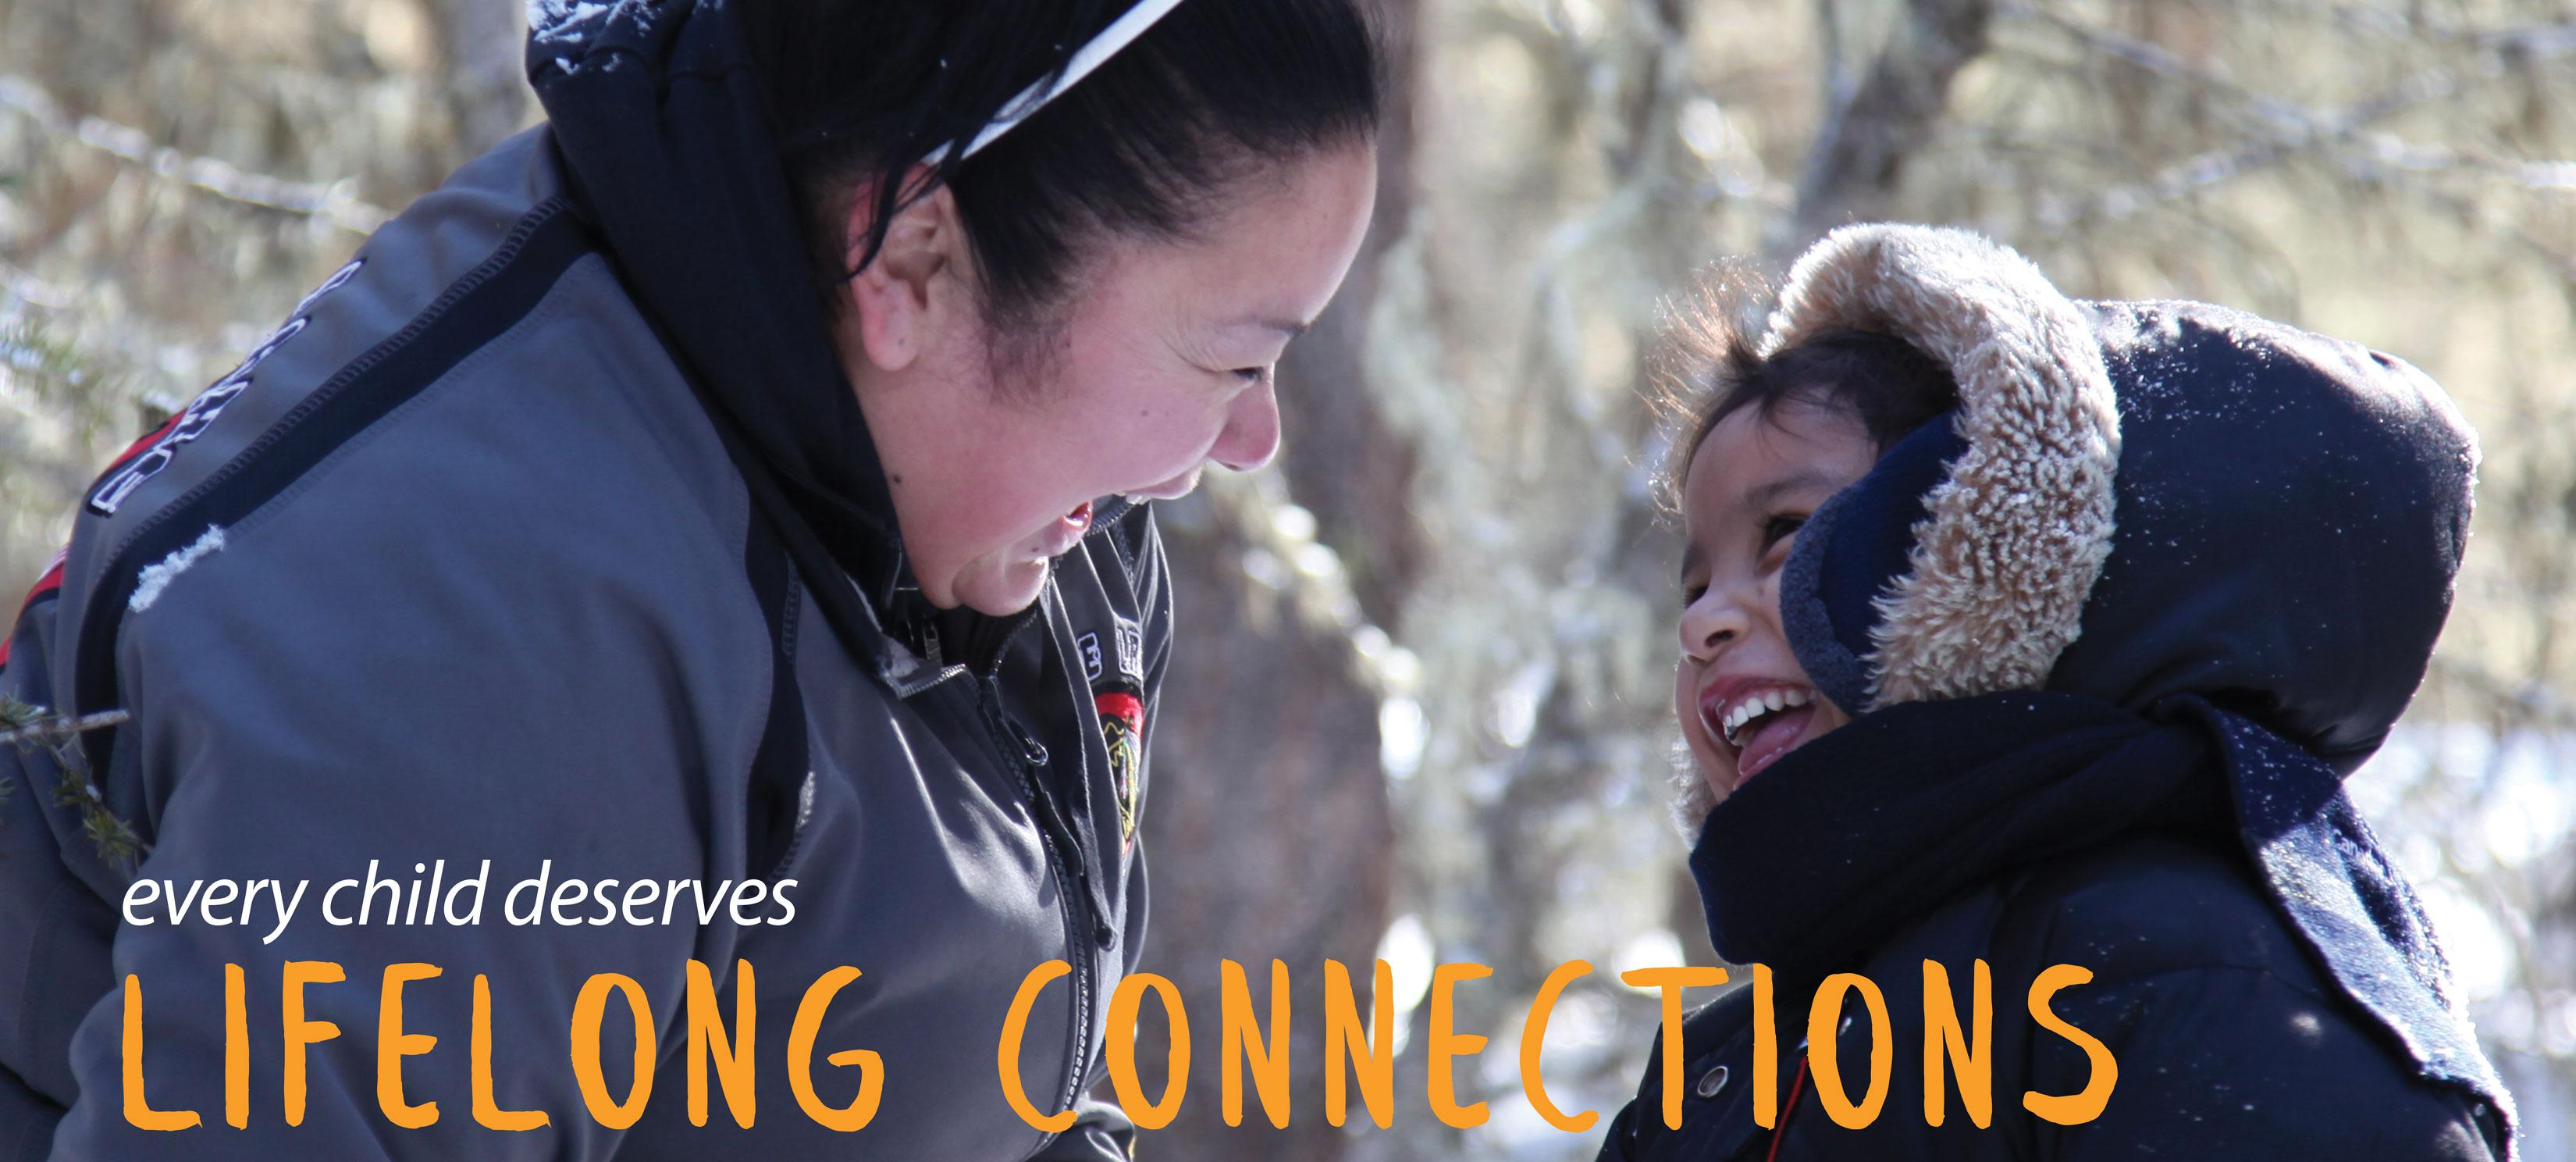 Lifelong Connections